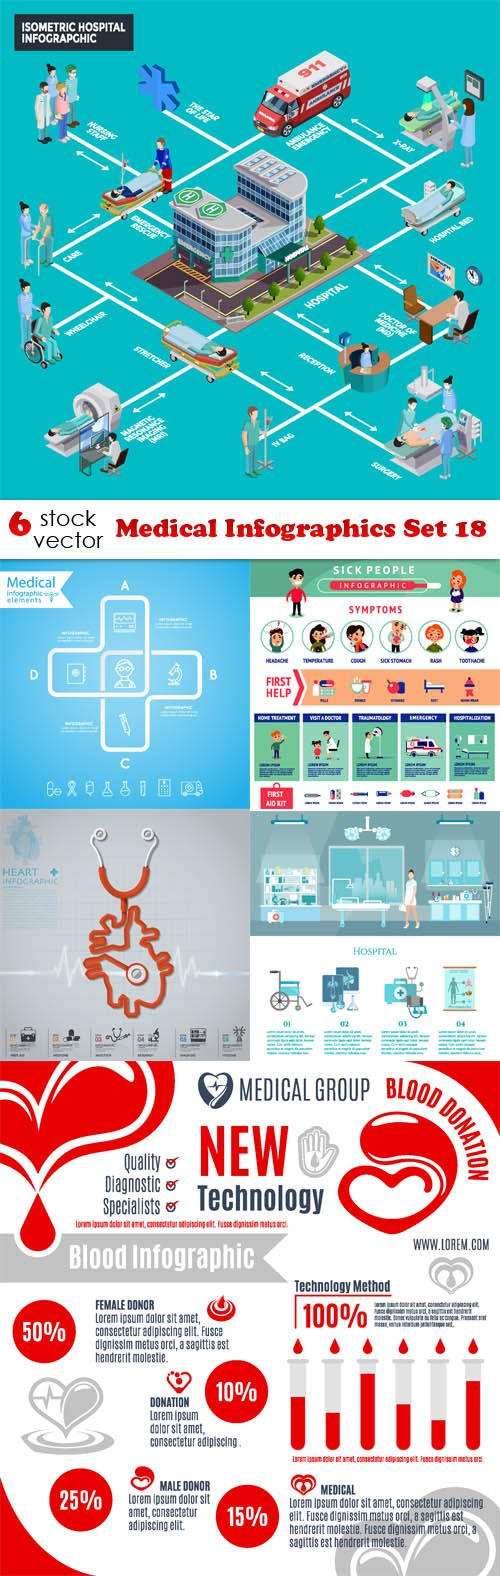 Vectors - Medical Infographics Set 18